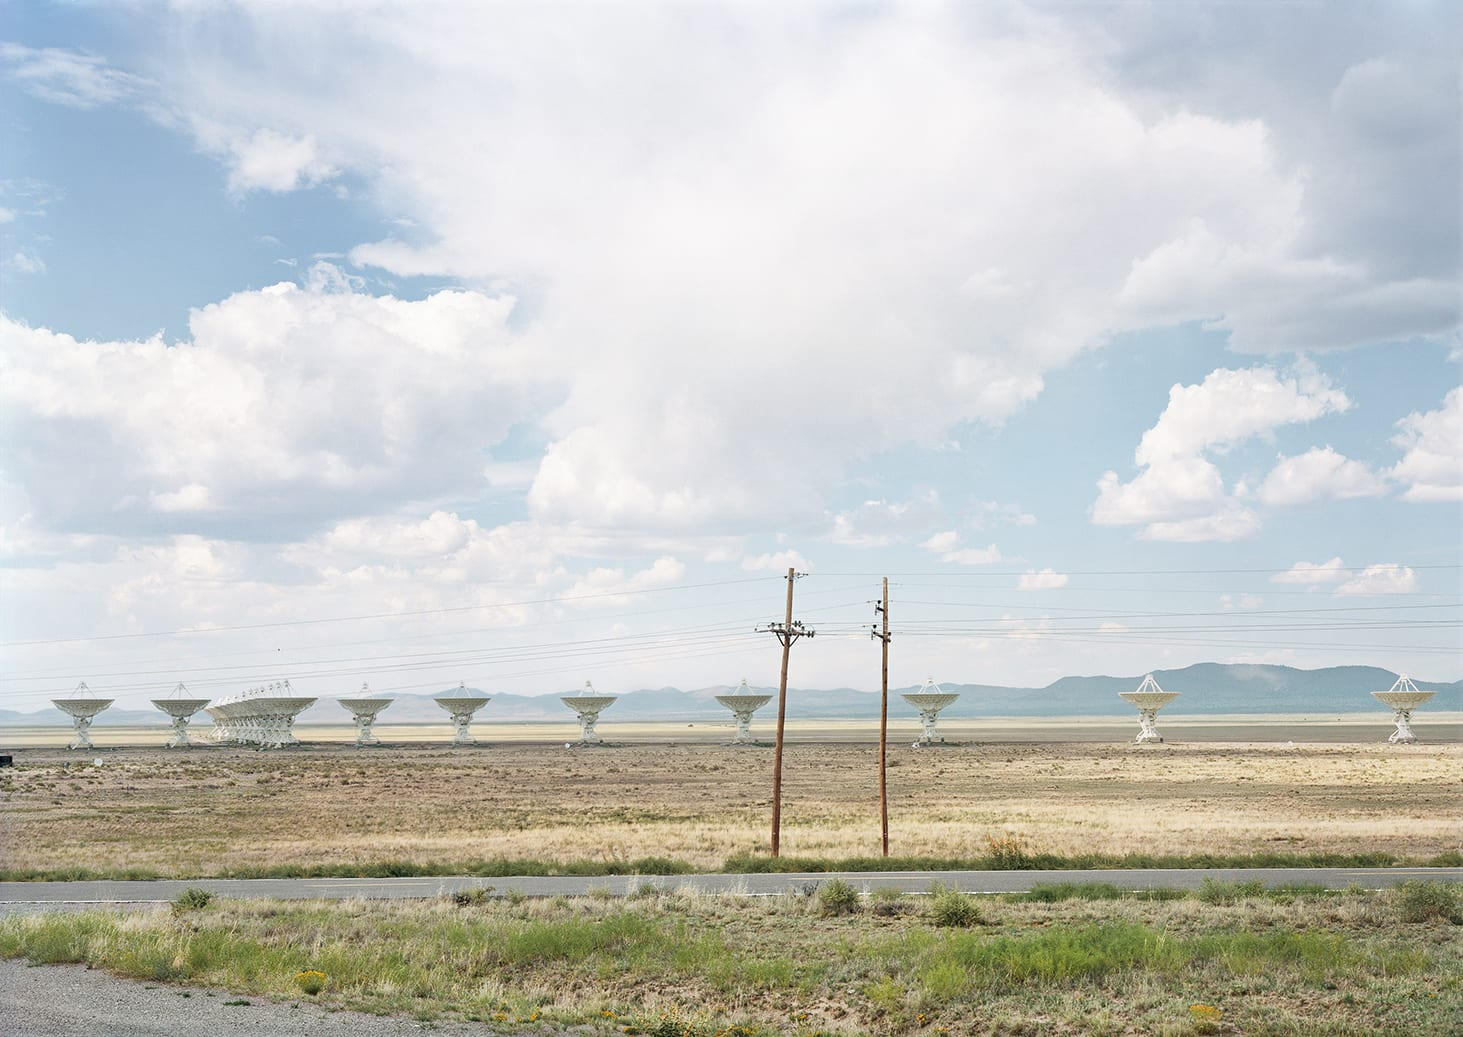 Radio antennas in Socorro, New Mexico